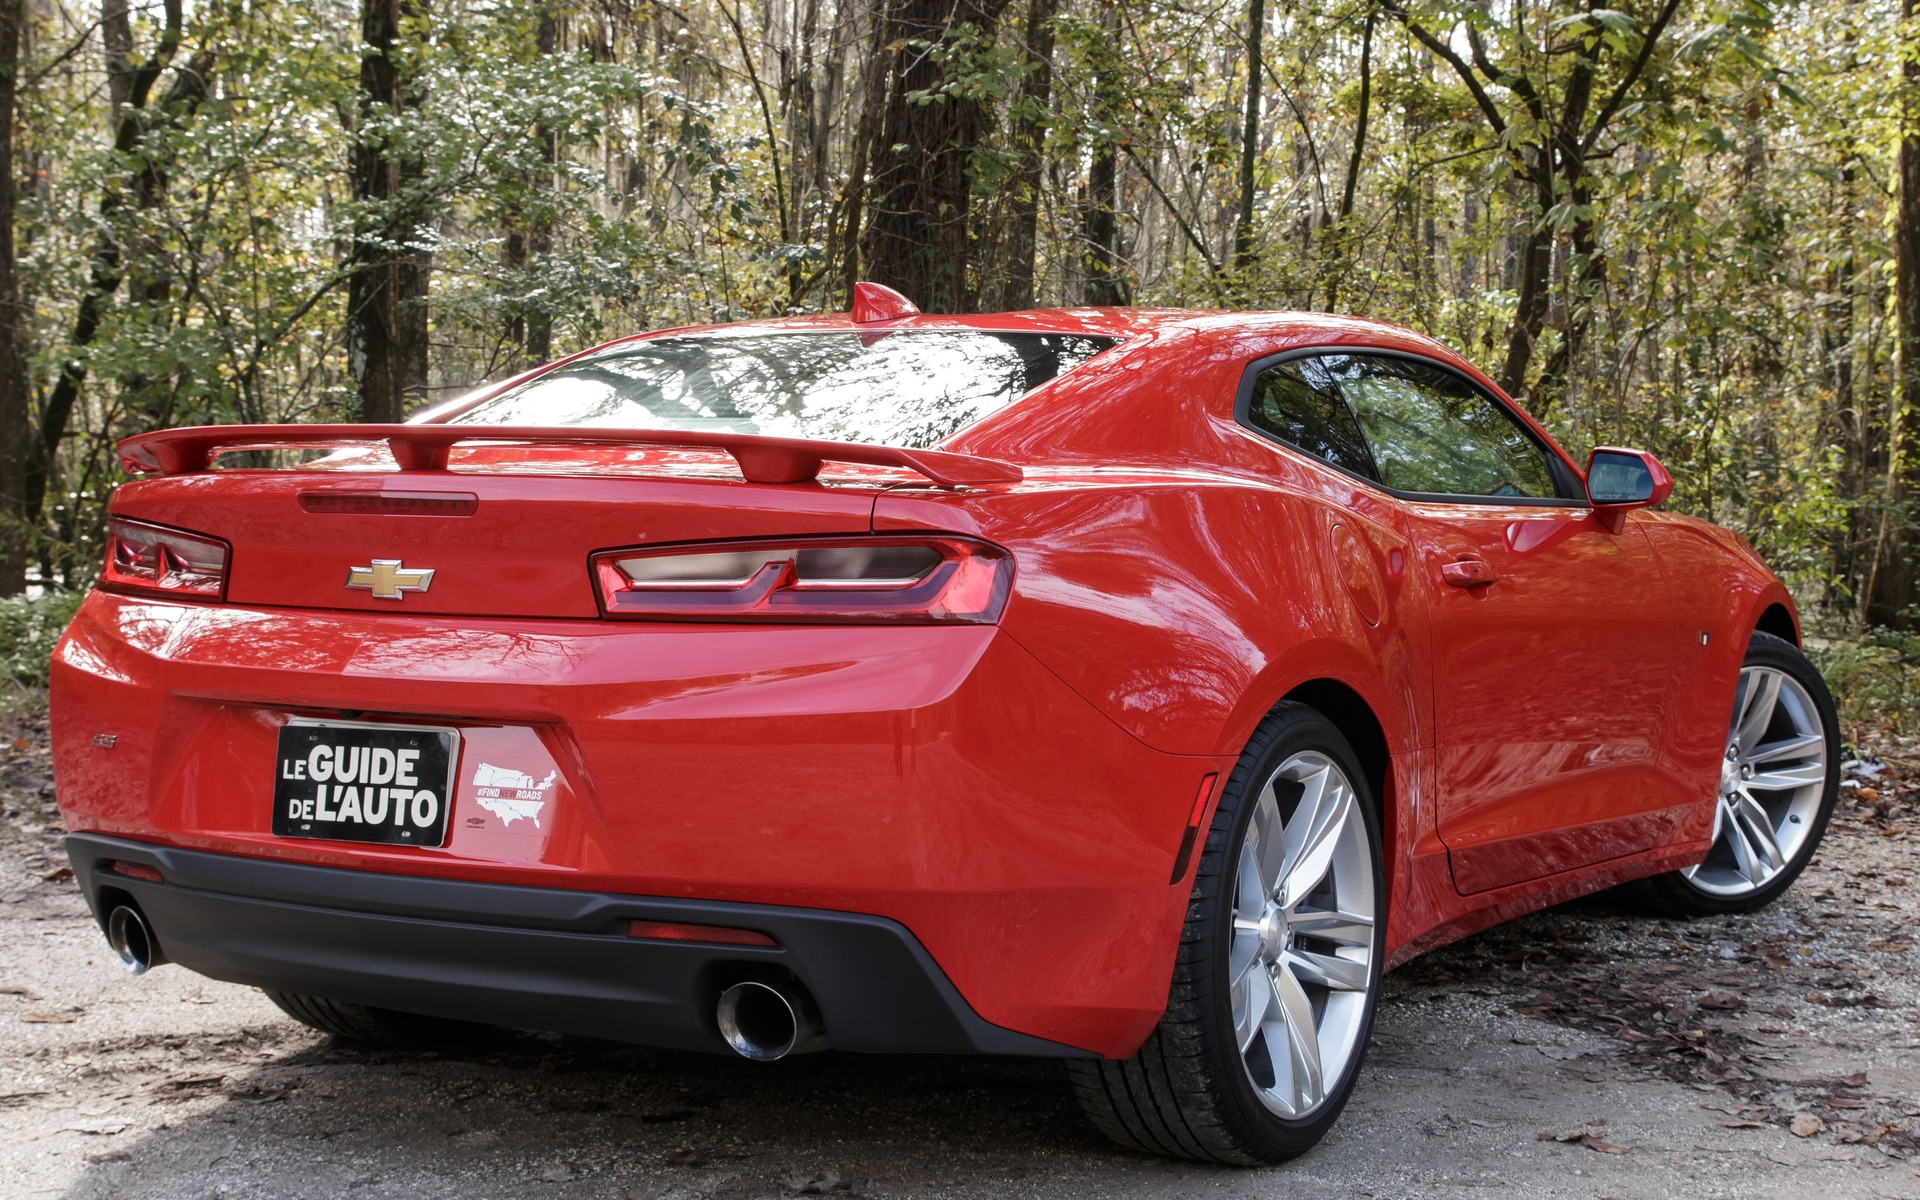 The Camaro's tail end is raised, which hinders visibility.